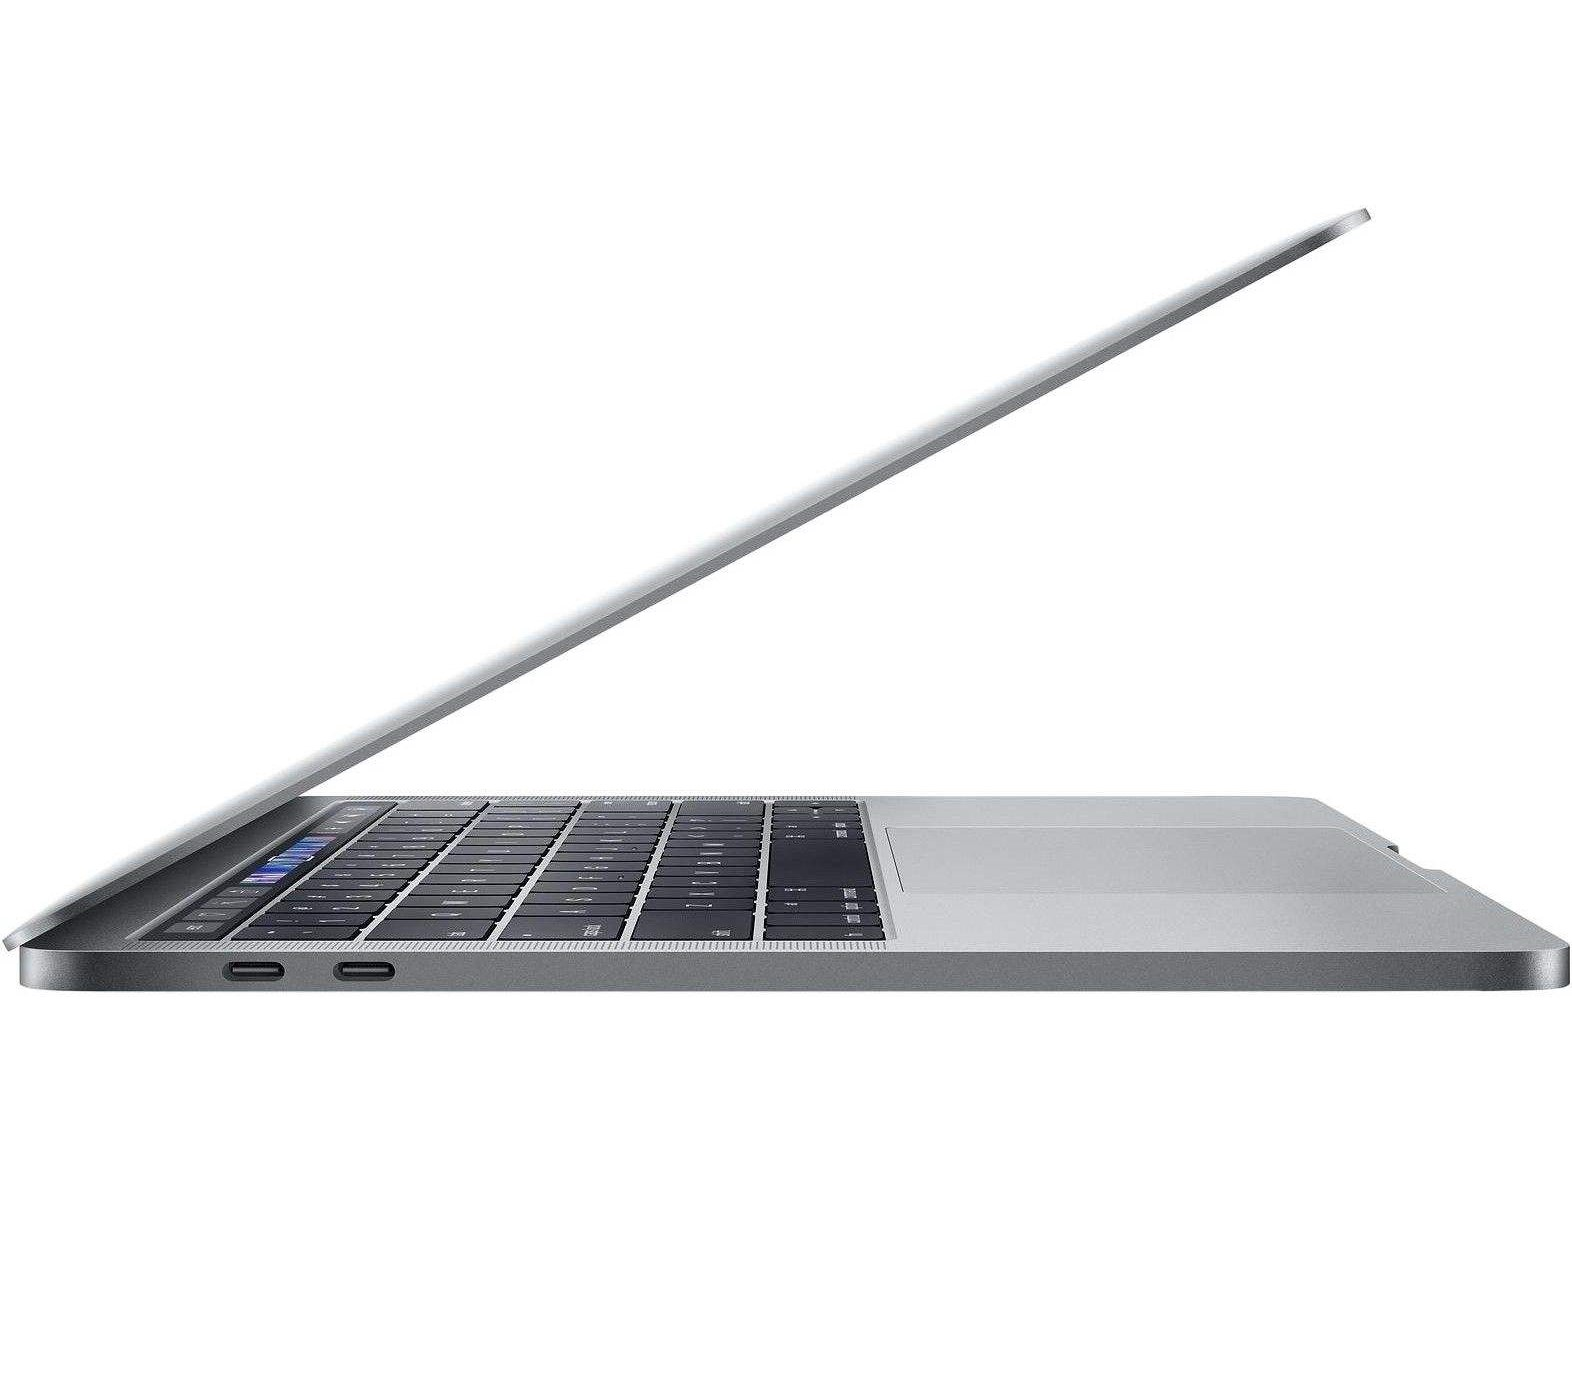 Apple MacBook Pro MUHP2 2019 - 13 inch Laptop With Touch Bar